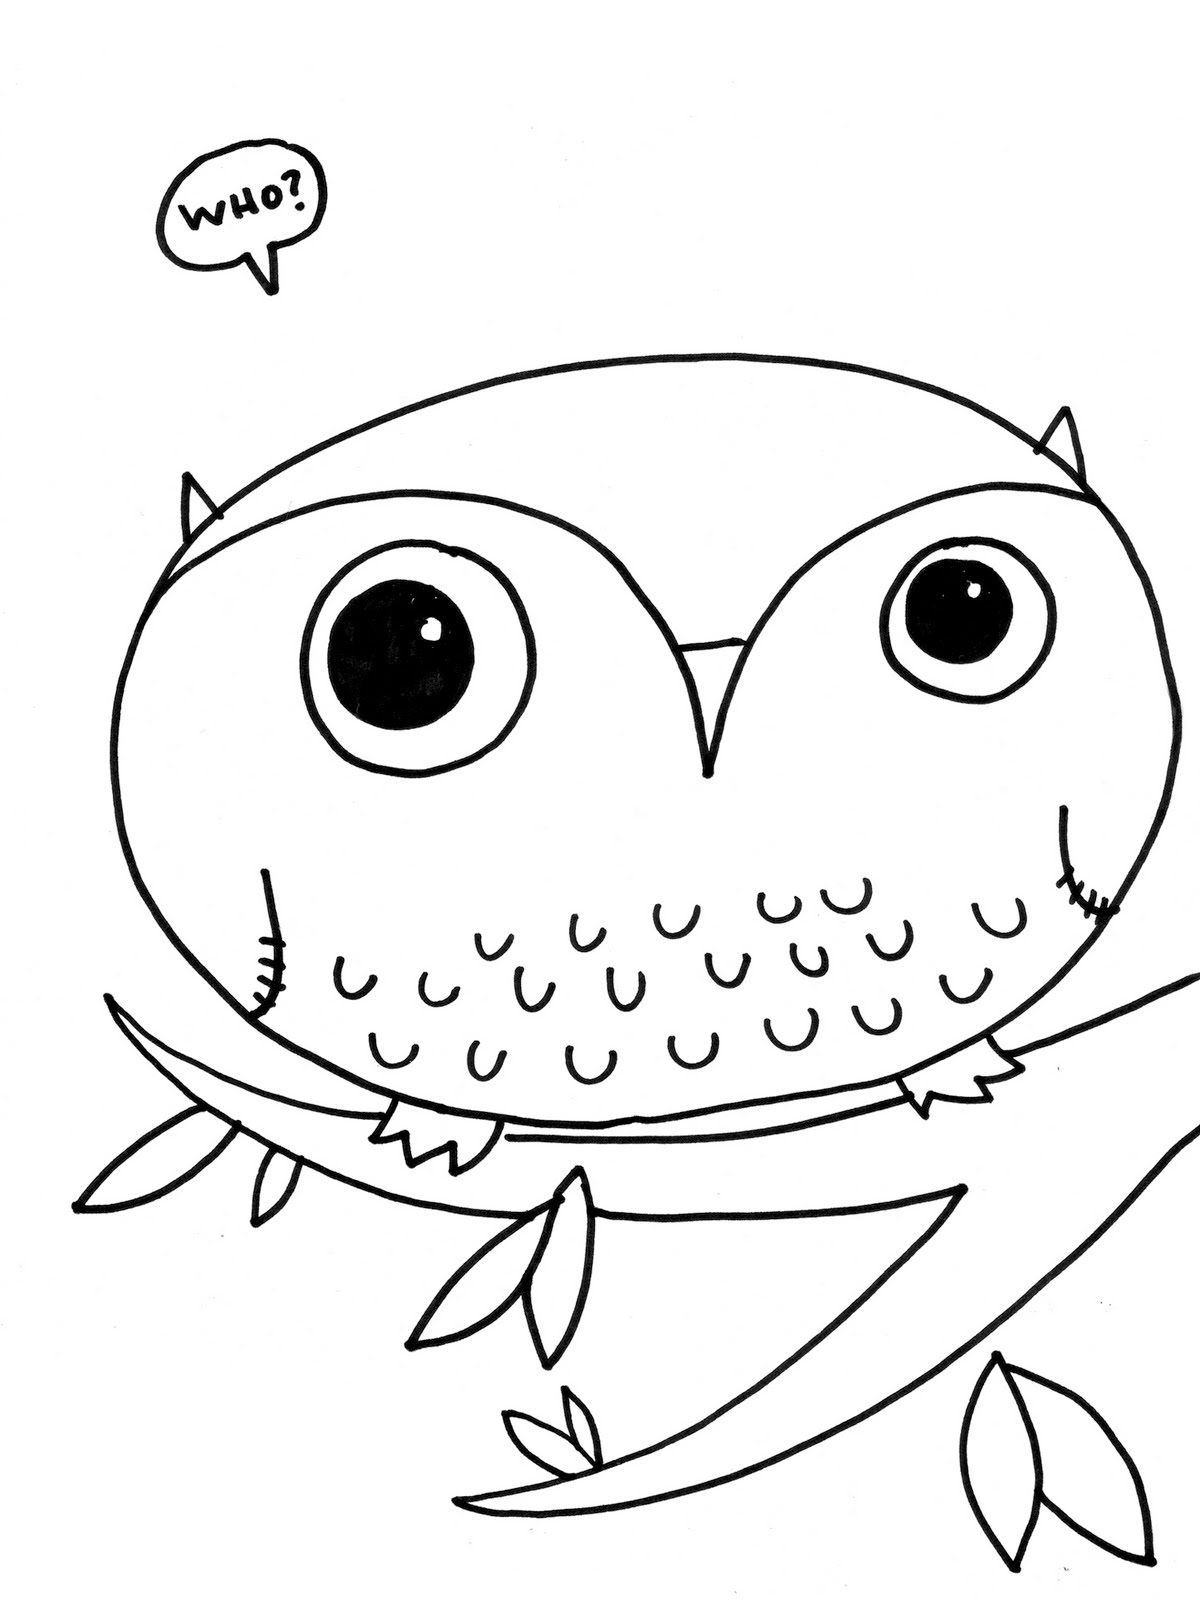 Free coloring in pages - Owl Coloring Pages Free